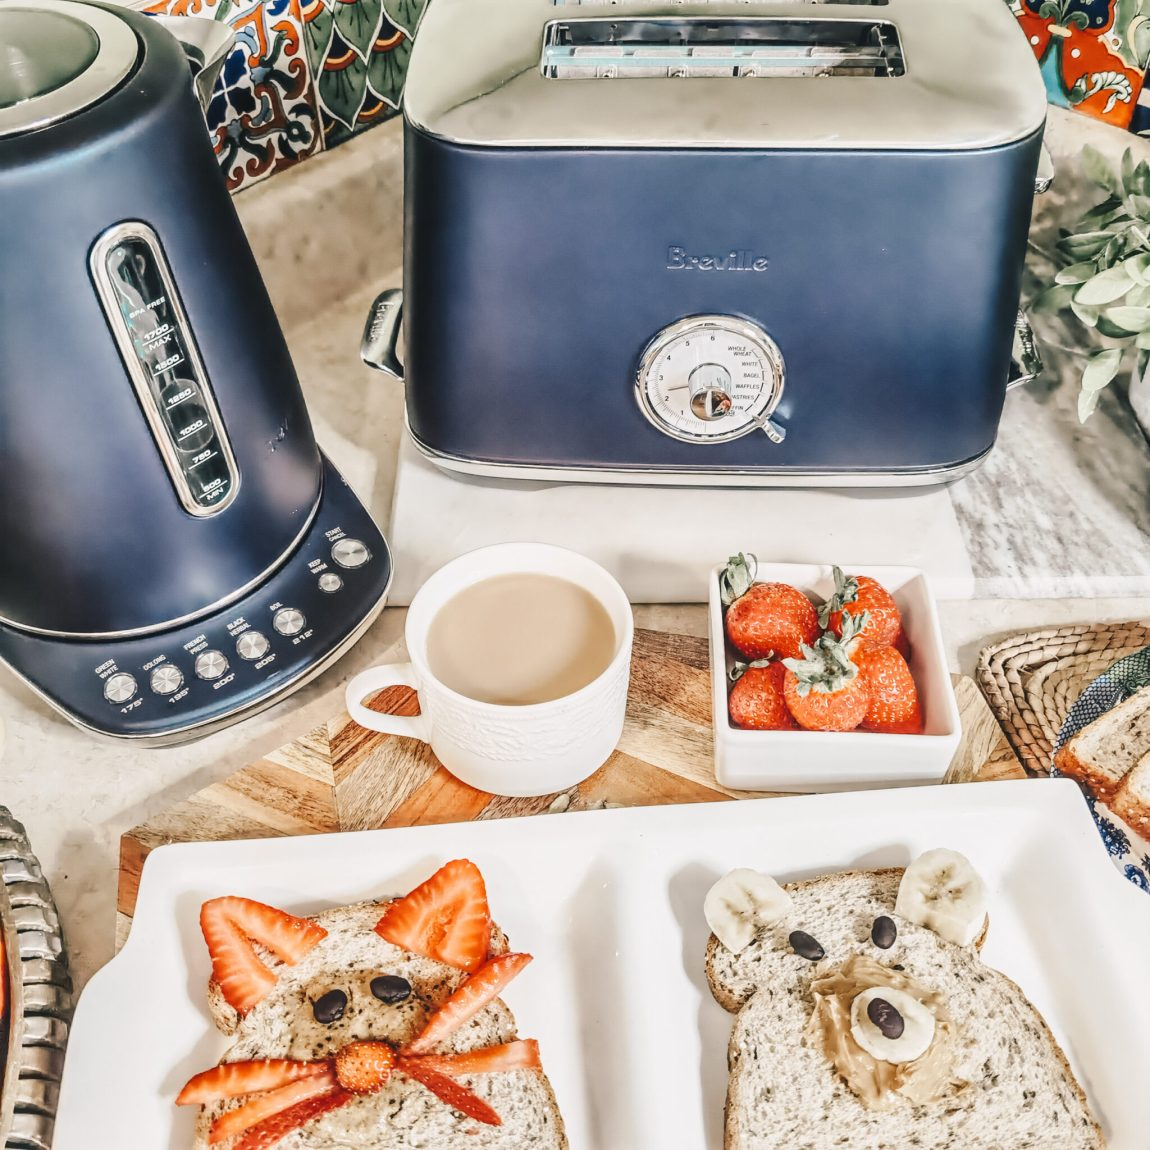 Breville Canada - Damson Blue Luxe Collection - Toast Select Luxe - Smart Kettle Luxe